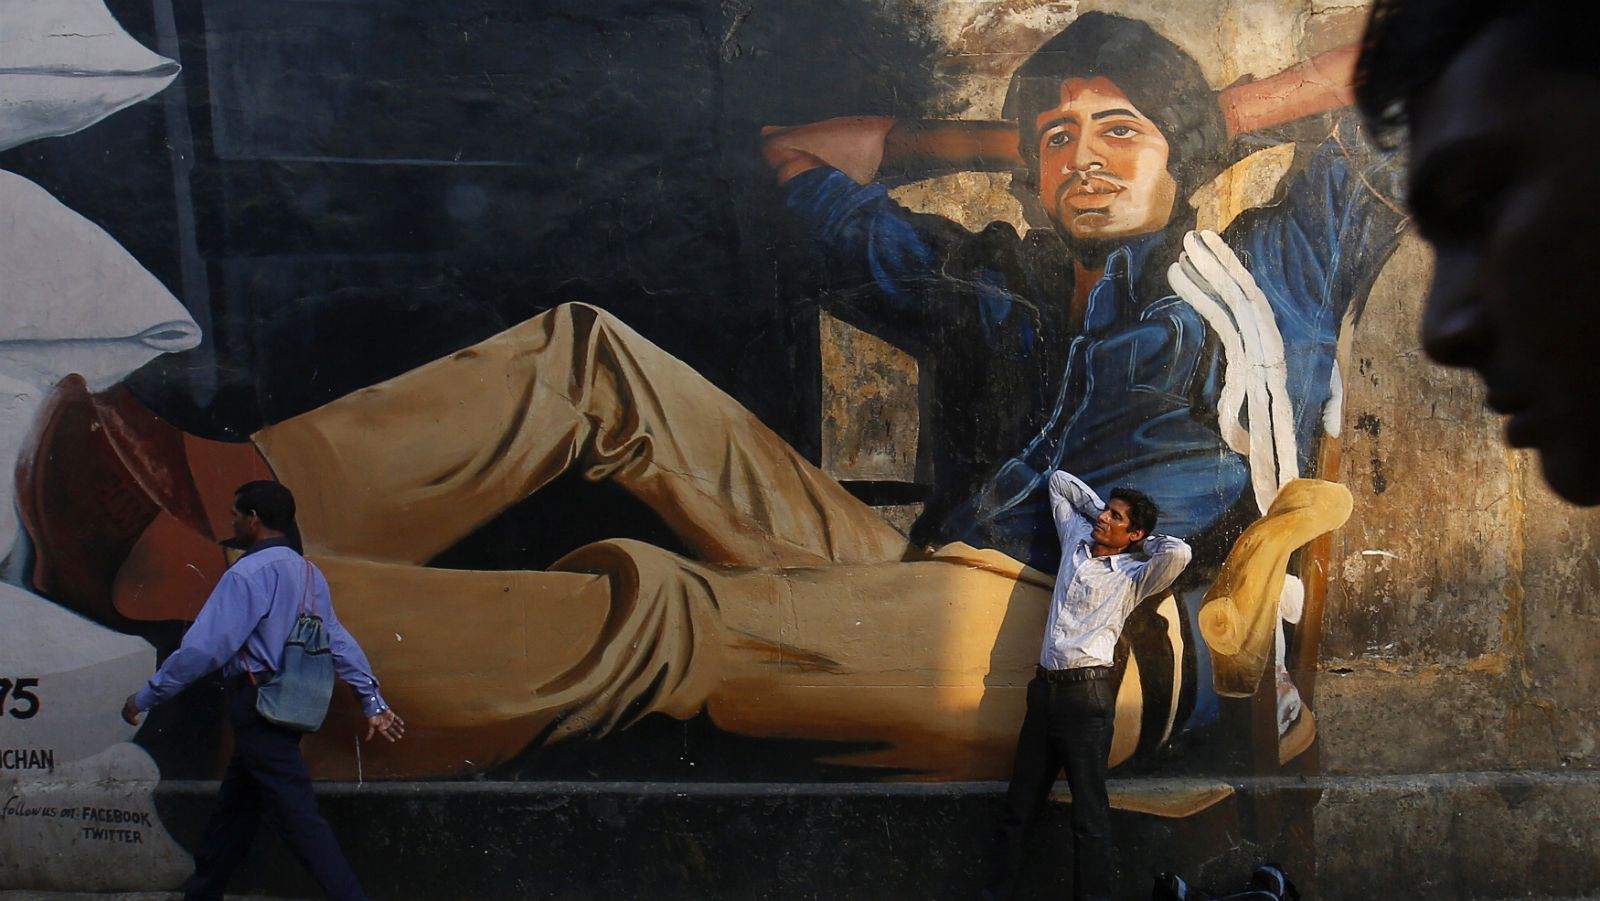 "Ram Pratap Verma, a 32-year-old aspiring Bollywood film actor, poses in front of a mural of actor Amitabh Bachchan in Mumbai May 1, 2013. Bollywood is an addiction for many; an addiction that attracts thousands of aspiring stars to the city of Mumbai. Ram Pratap Verma made the journey from his small village eight years ago, and despite carrying his whole ""home"" inside his bag, he is determined not to give up on his ambitions. He endeavours to watch at least one film a week at a cinema, where the silver screen keeps his dreams alive. Picture taken May 1, 2013."